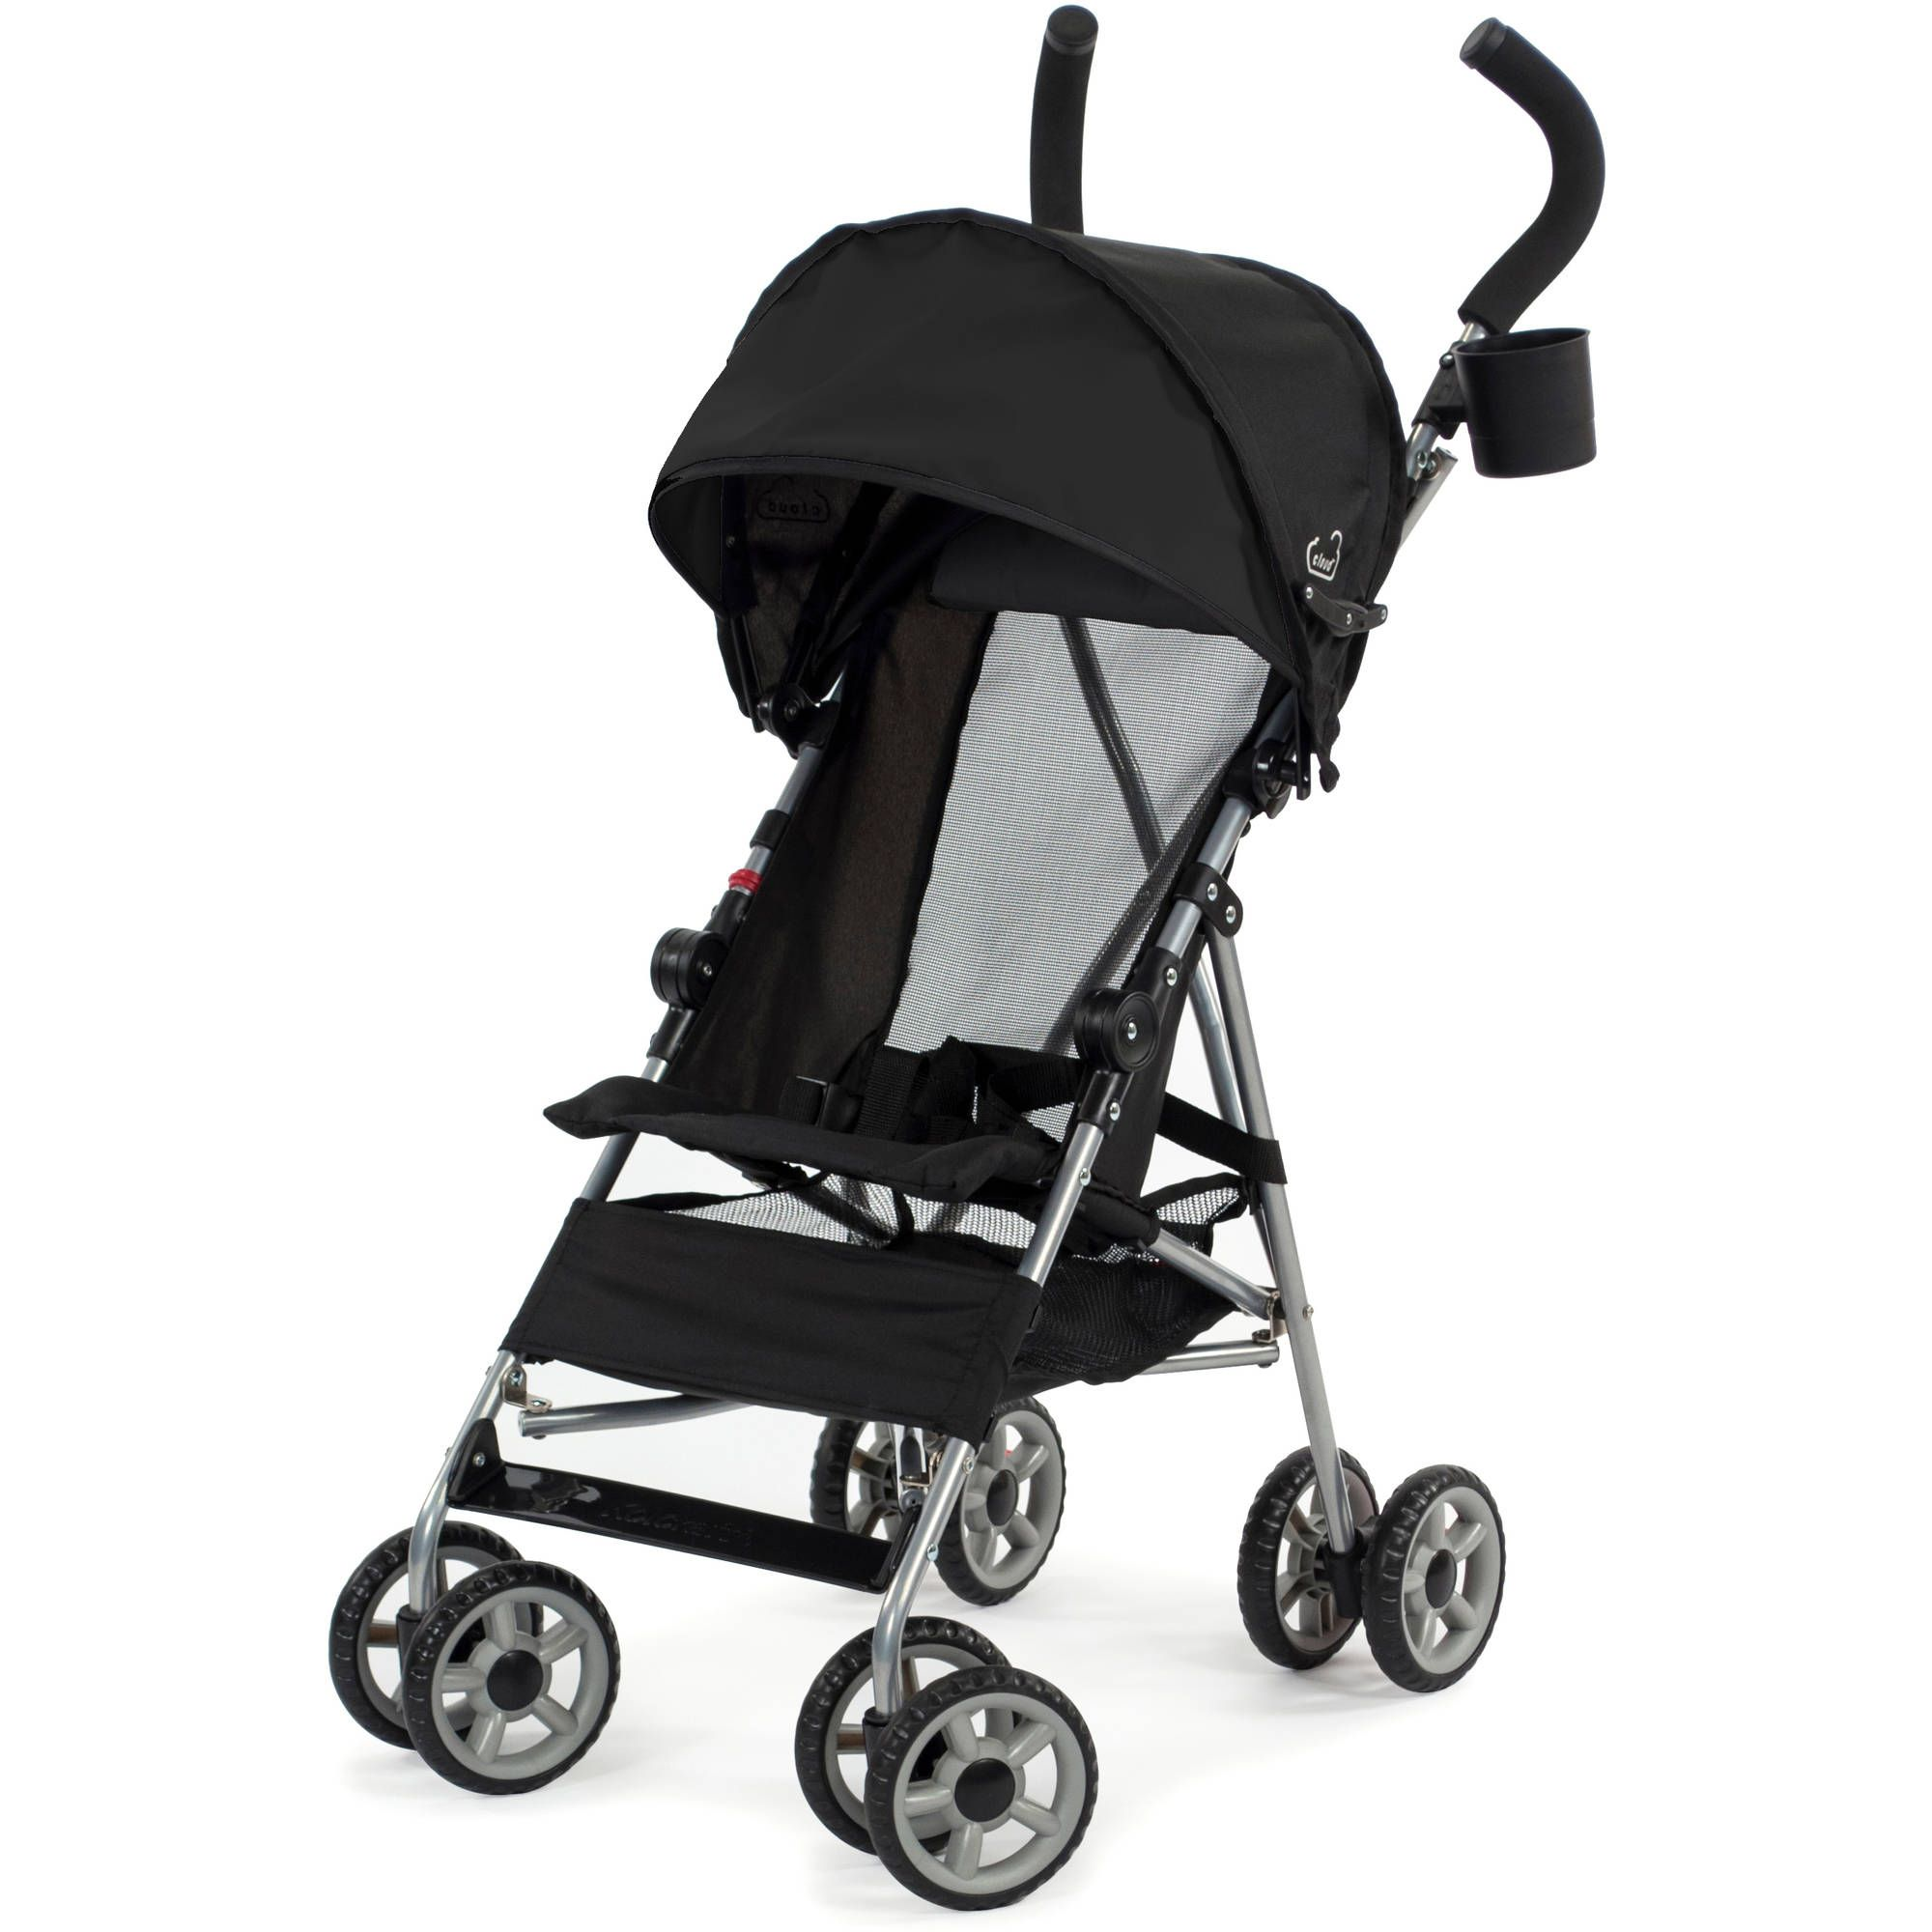 Baby (With images) Kolcraft cloud umbrella stroller